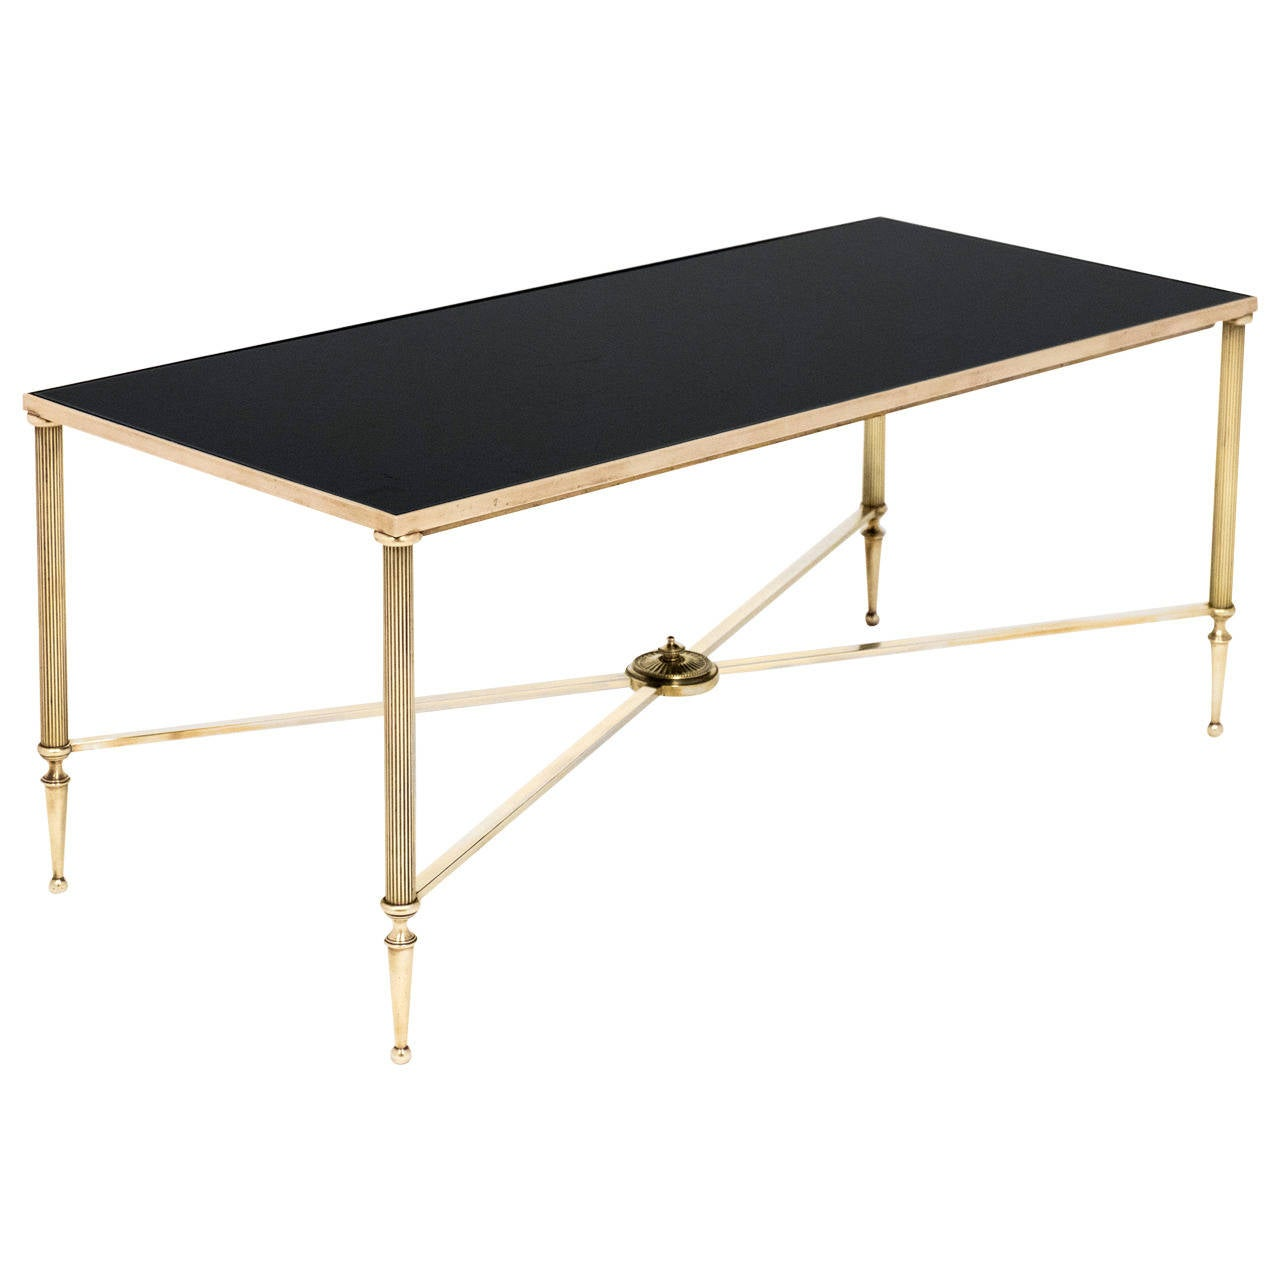 French vintage black glass and brass coffee table at 1stdibs Antique brass coffee table